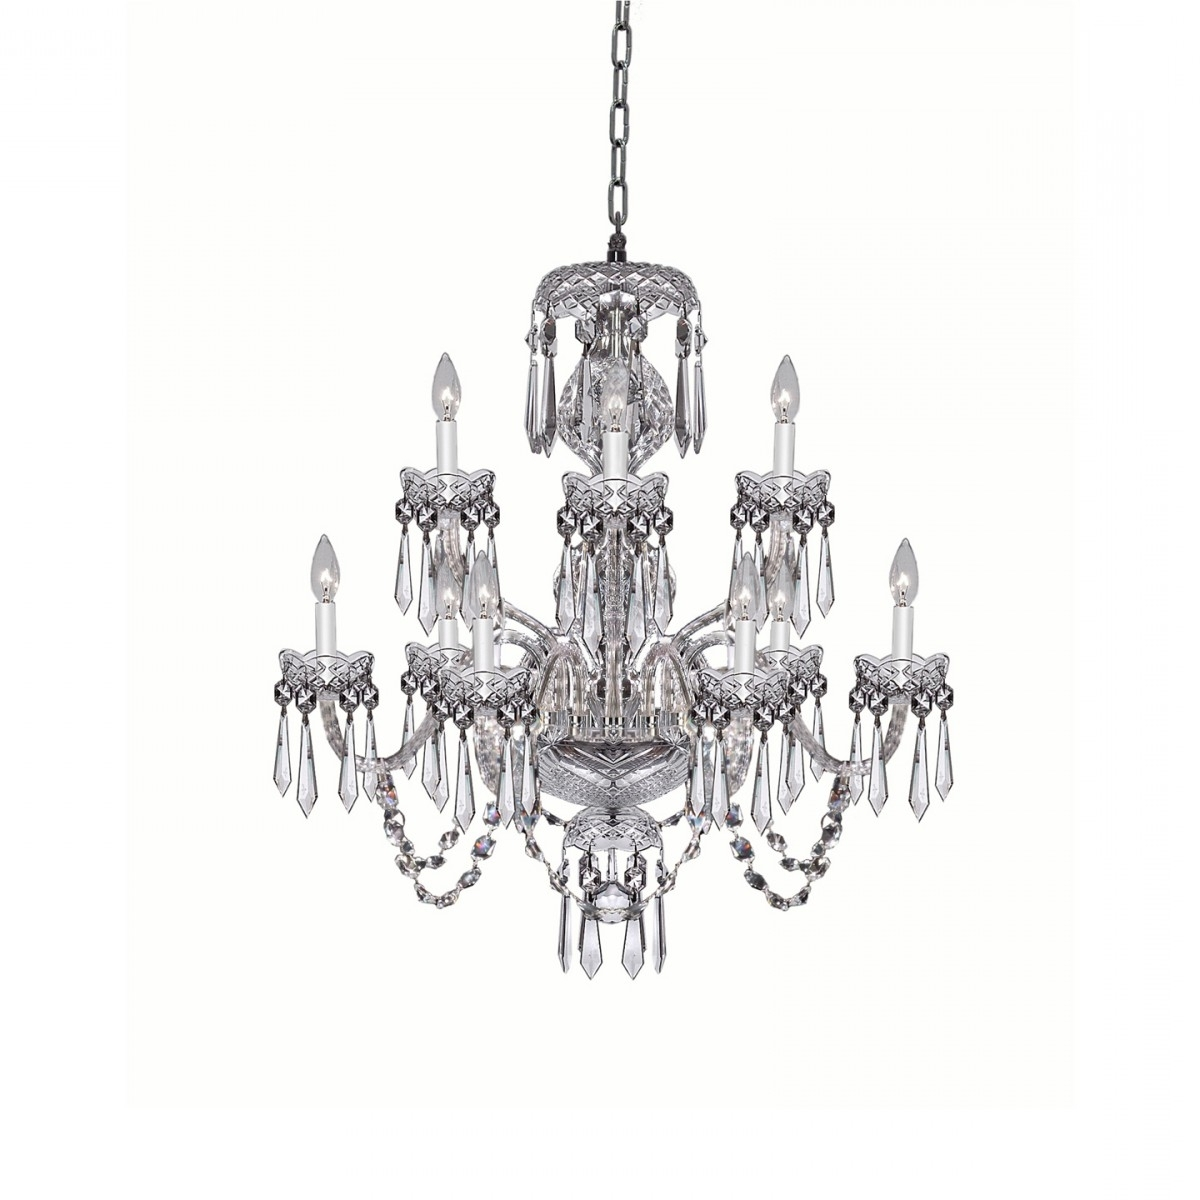 Crystal Chandeliers Regarding Best And Newest Crystal Chandeliers & Lighting – Waterford® Official Us Site (View 9 of 20)